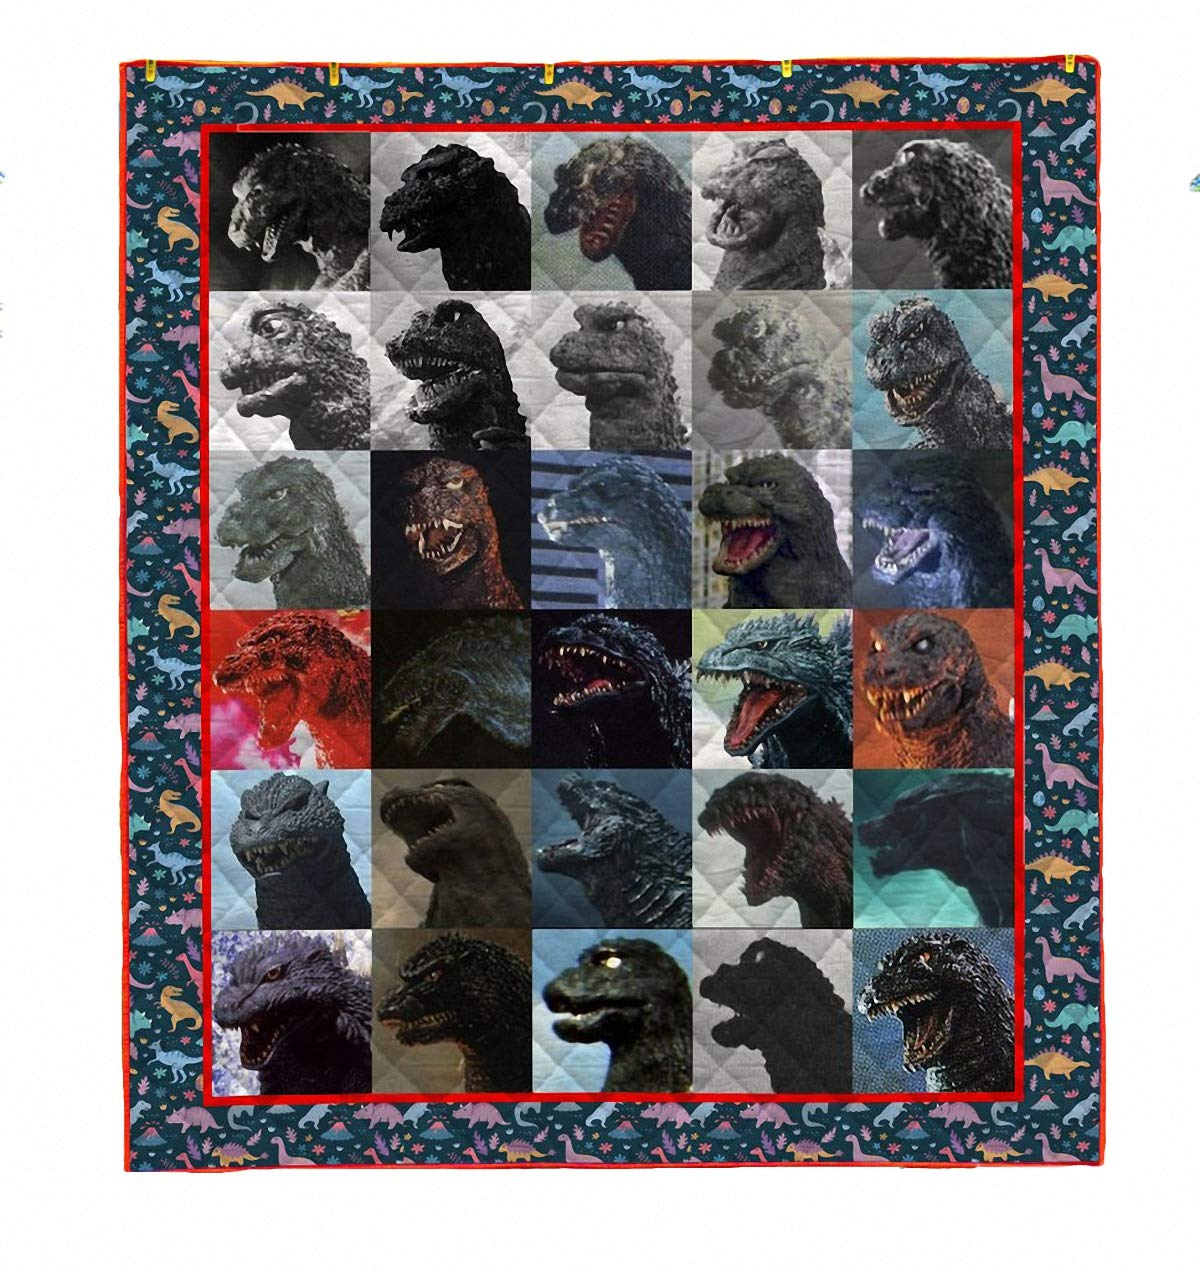 owho Summer 3D Godzilla Monste Quilt Blanket for Kids Adults Bedding Throw Soft Warm Thin Blanket with Cotton Quilt King Size by owho